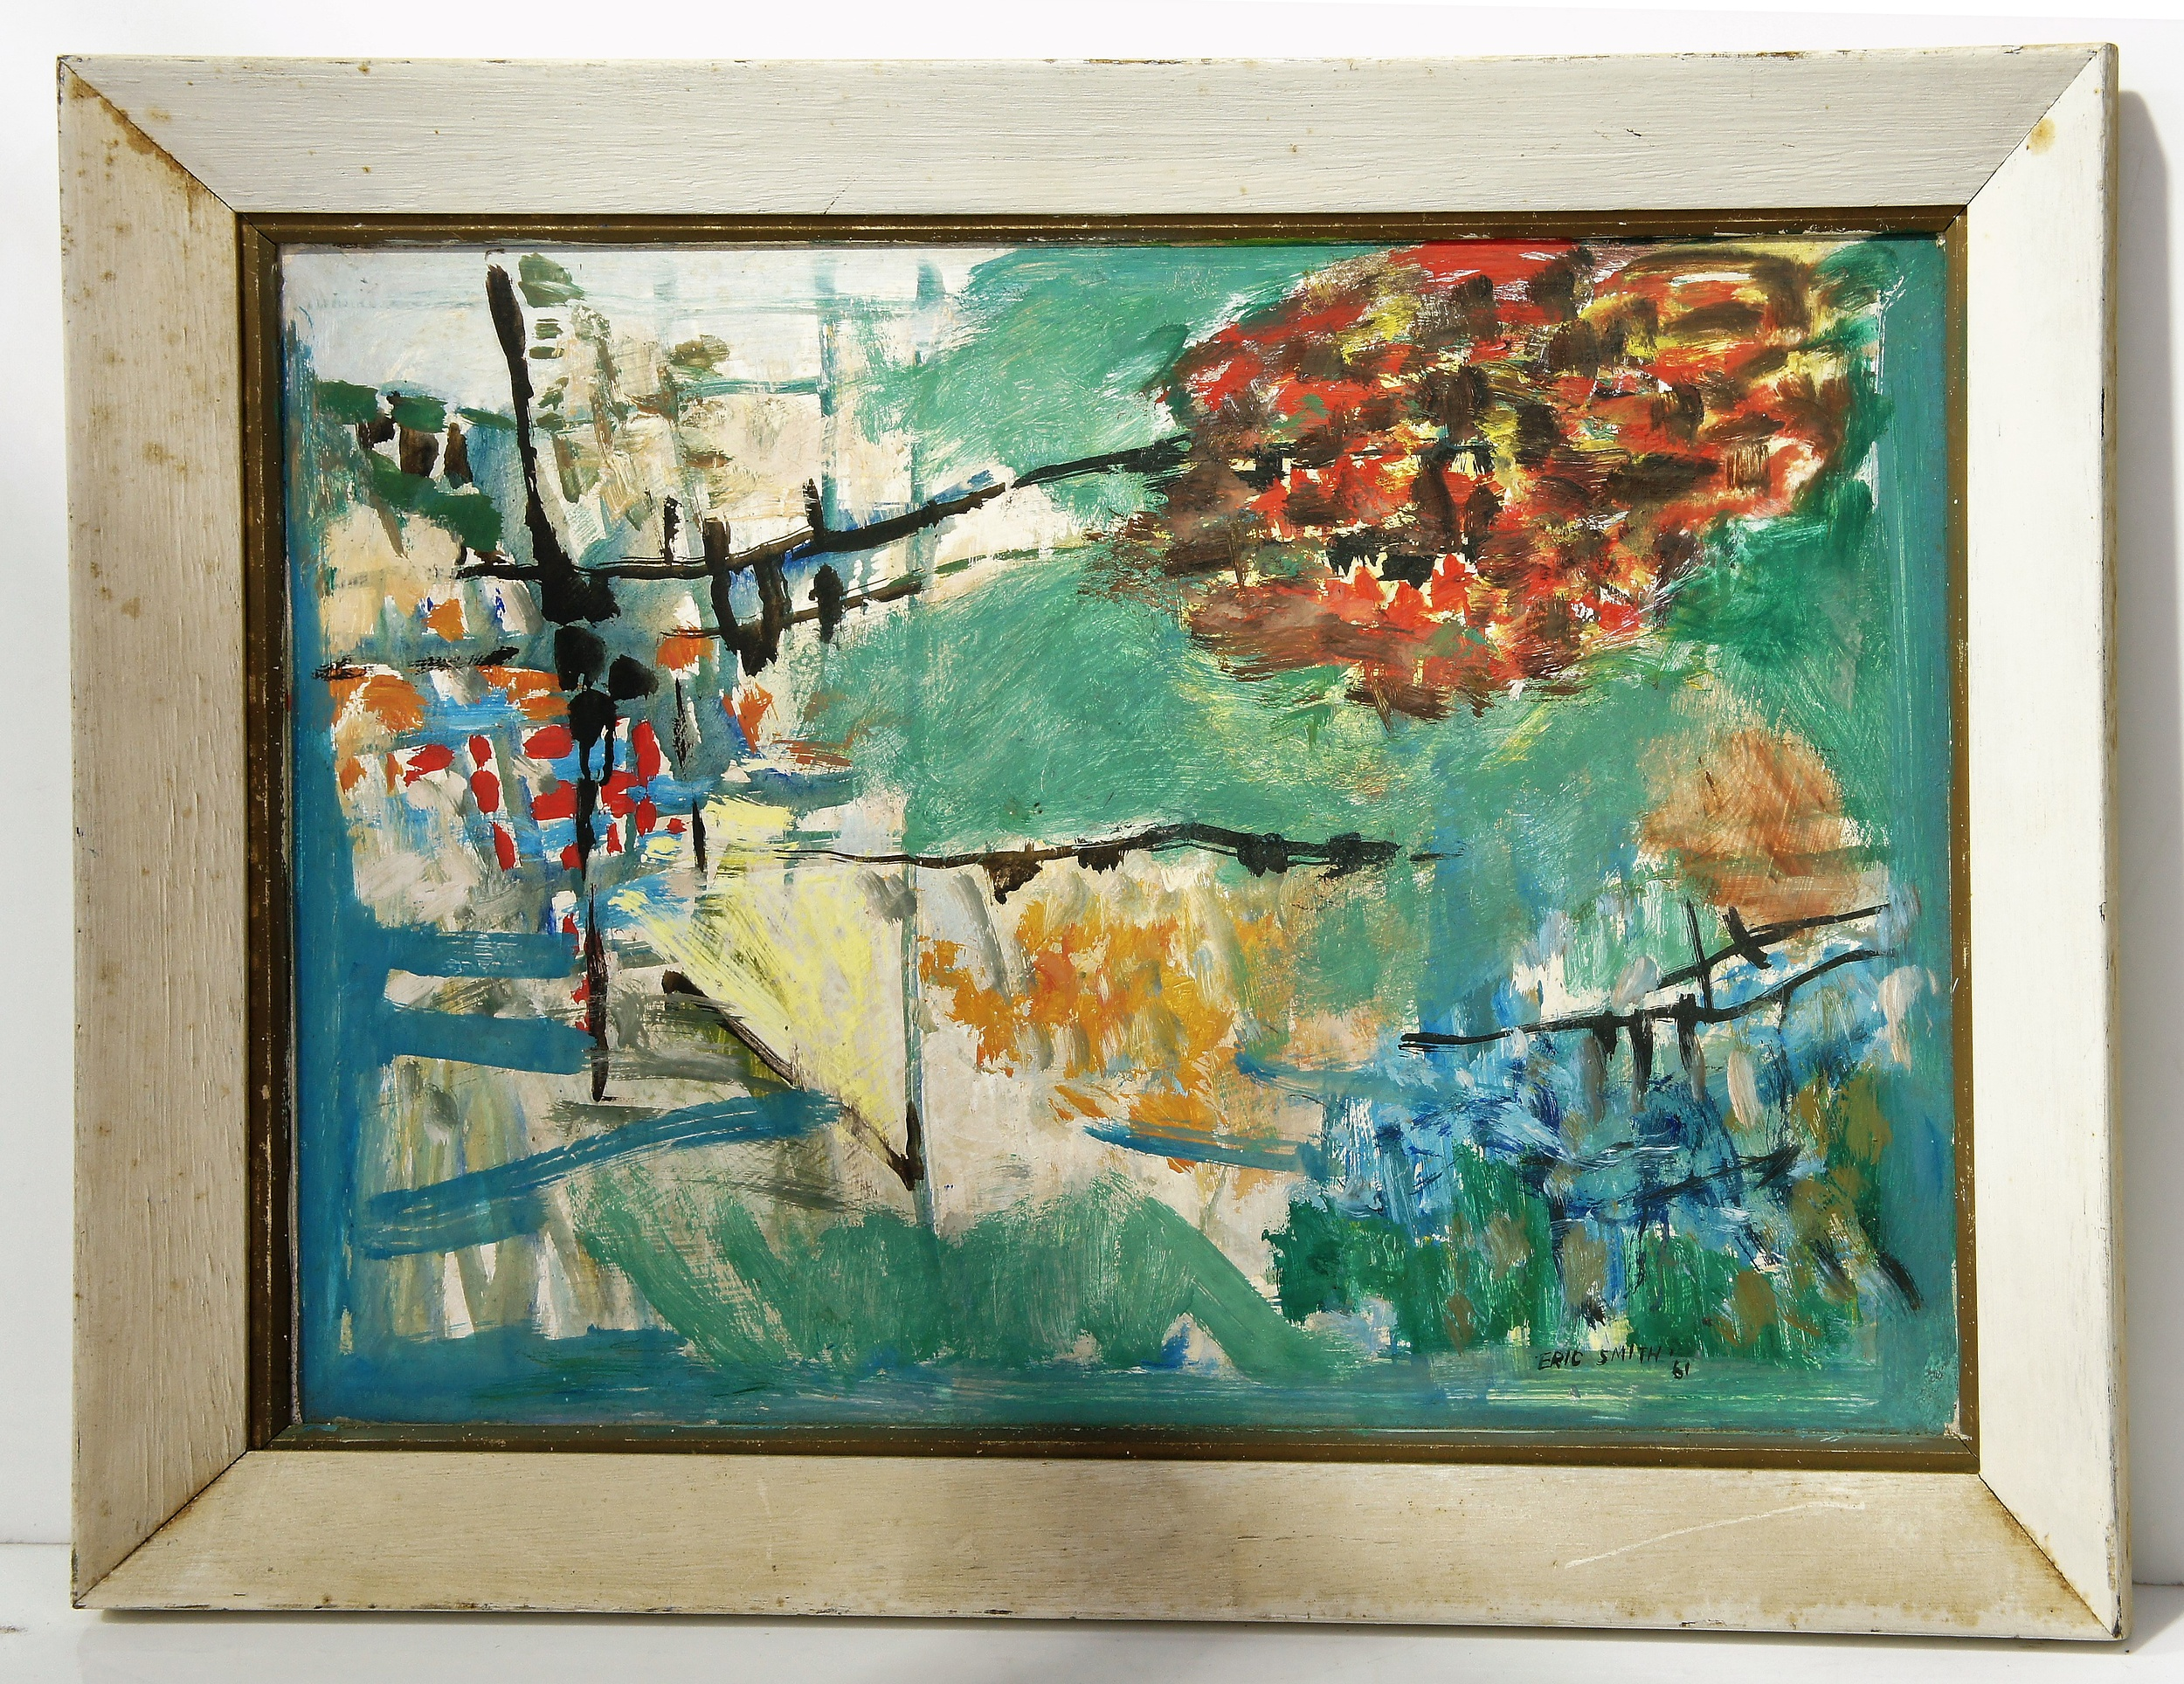 'Eric Smith (1919-2017) Untitled Landscape Oil on Board'